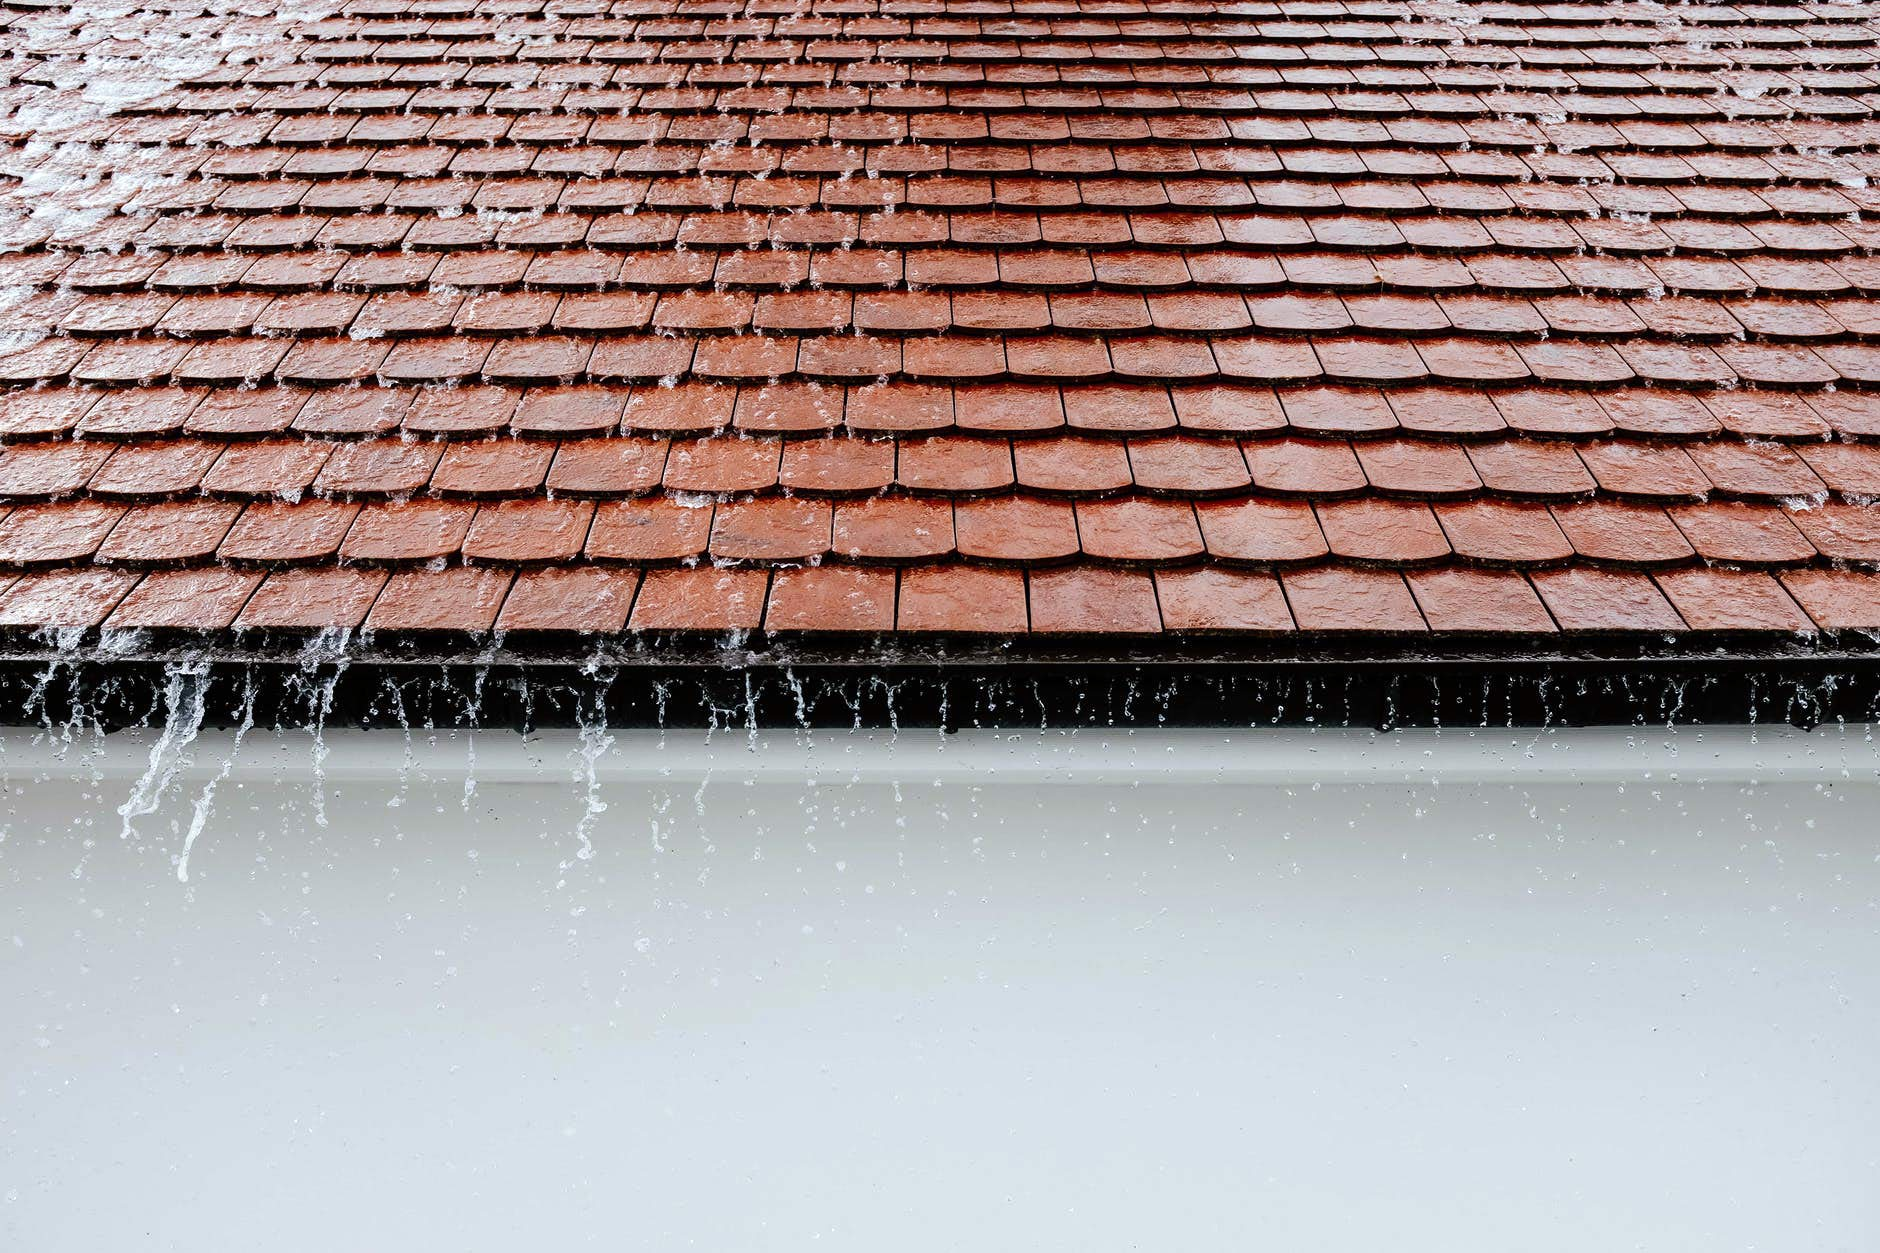 Rain falling from red roof